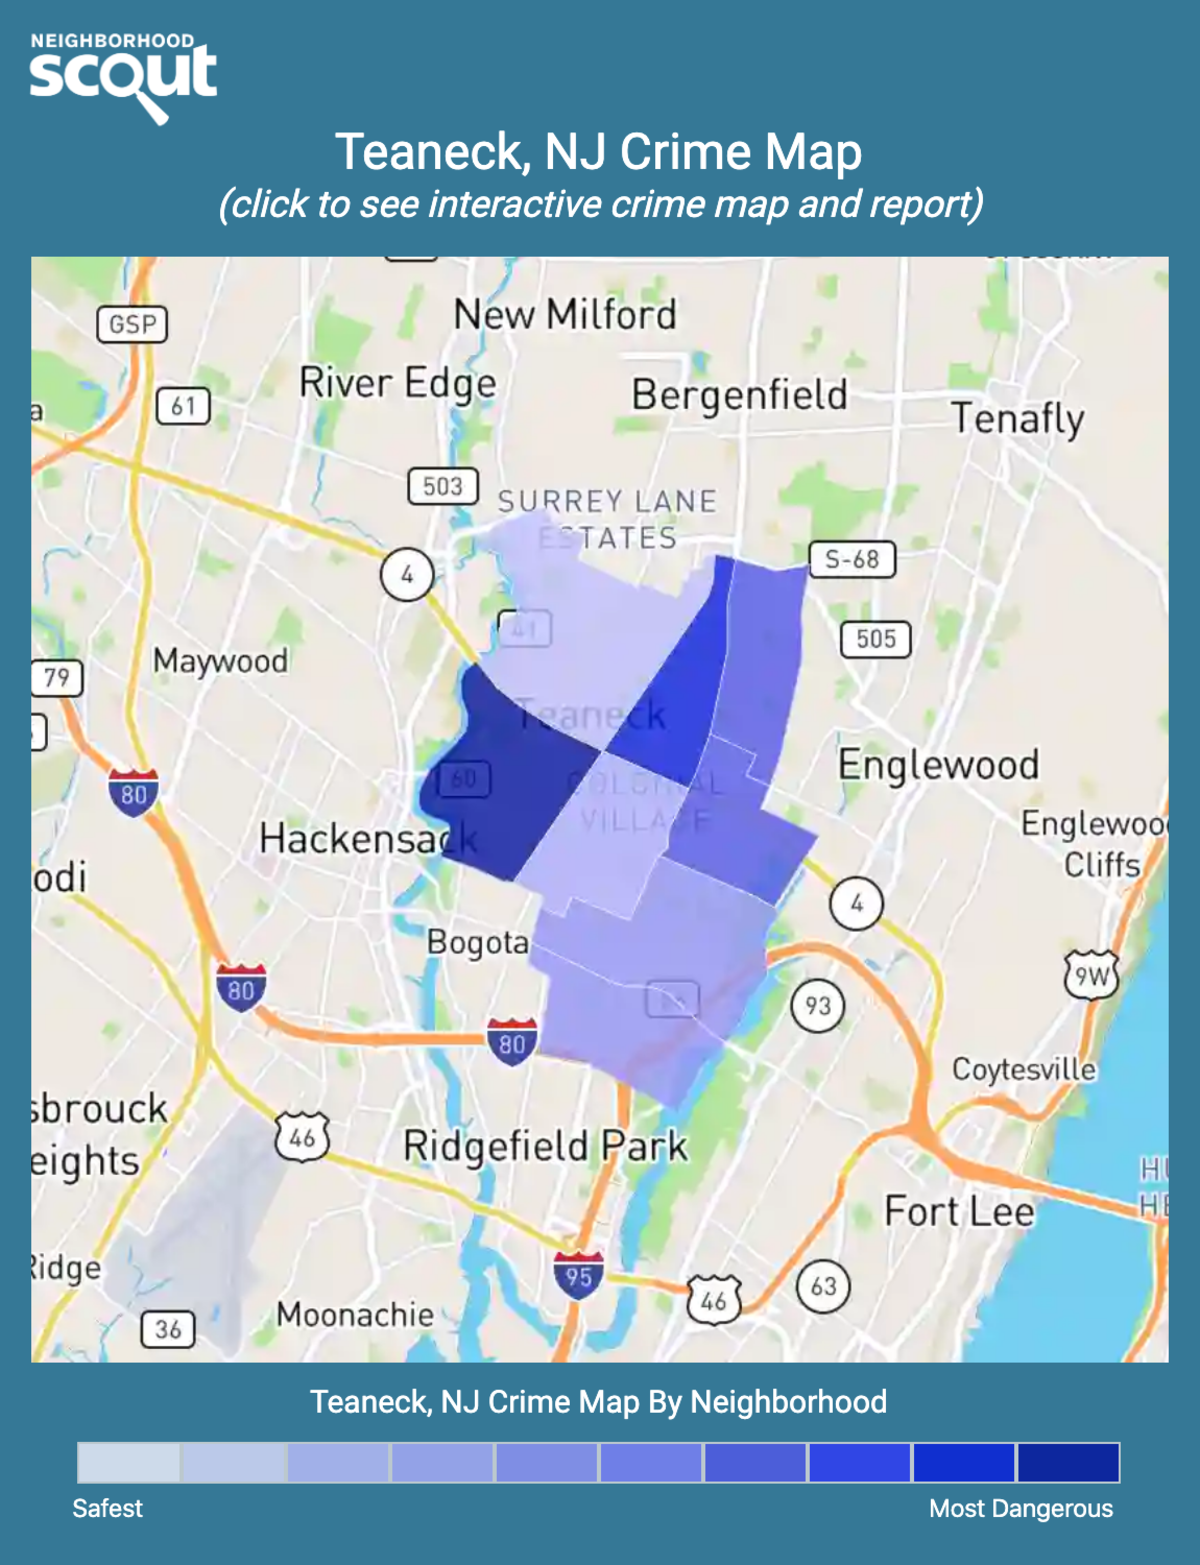 Teaneck, New Jersey crime map